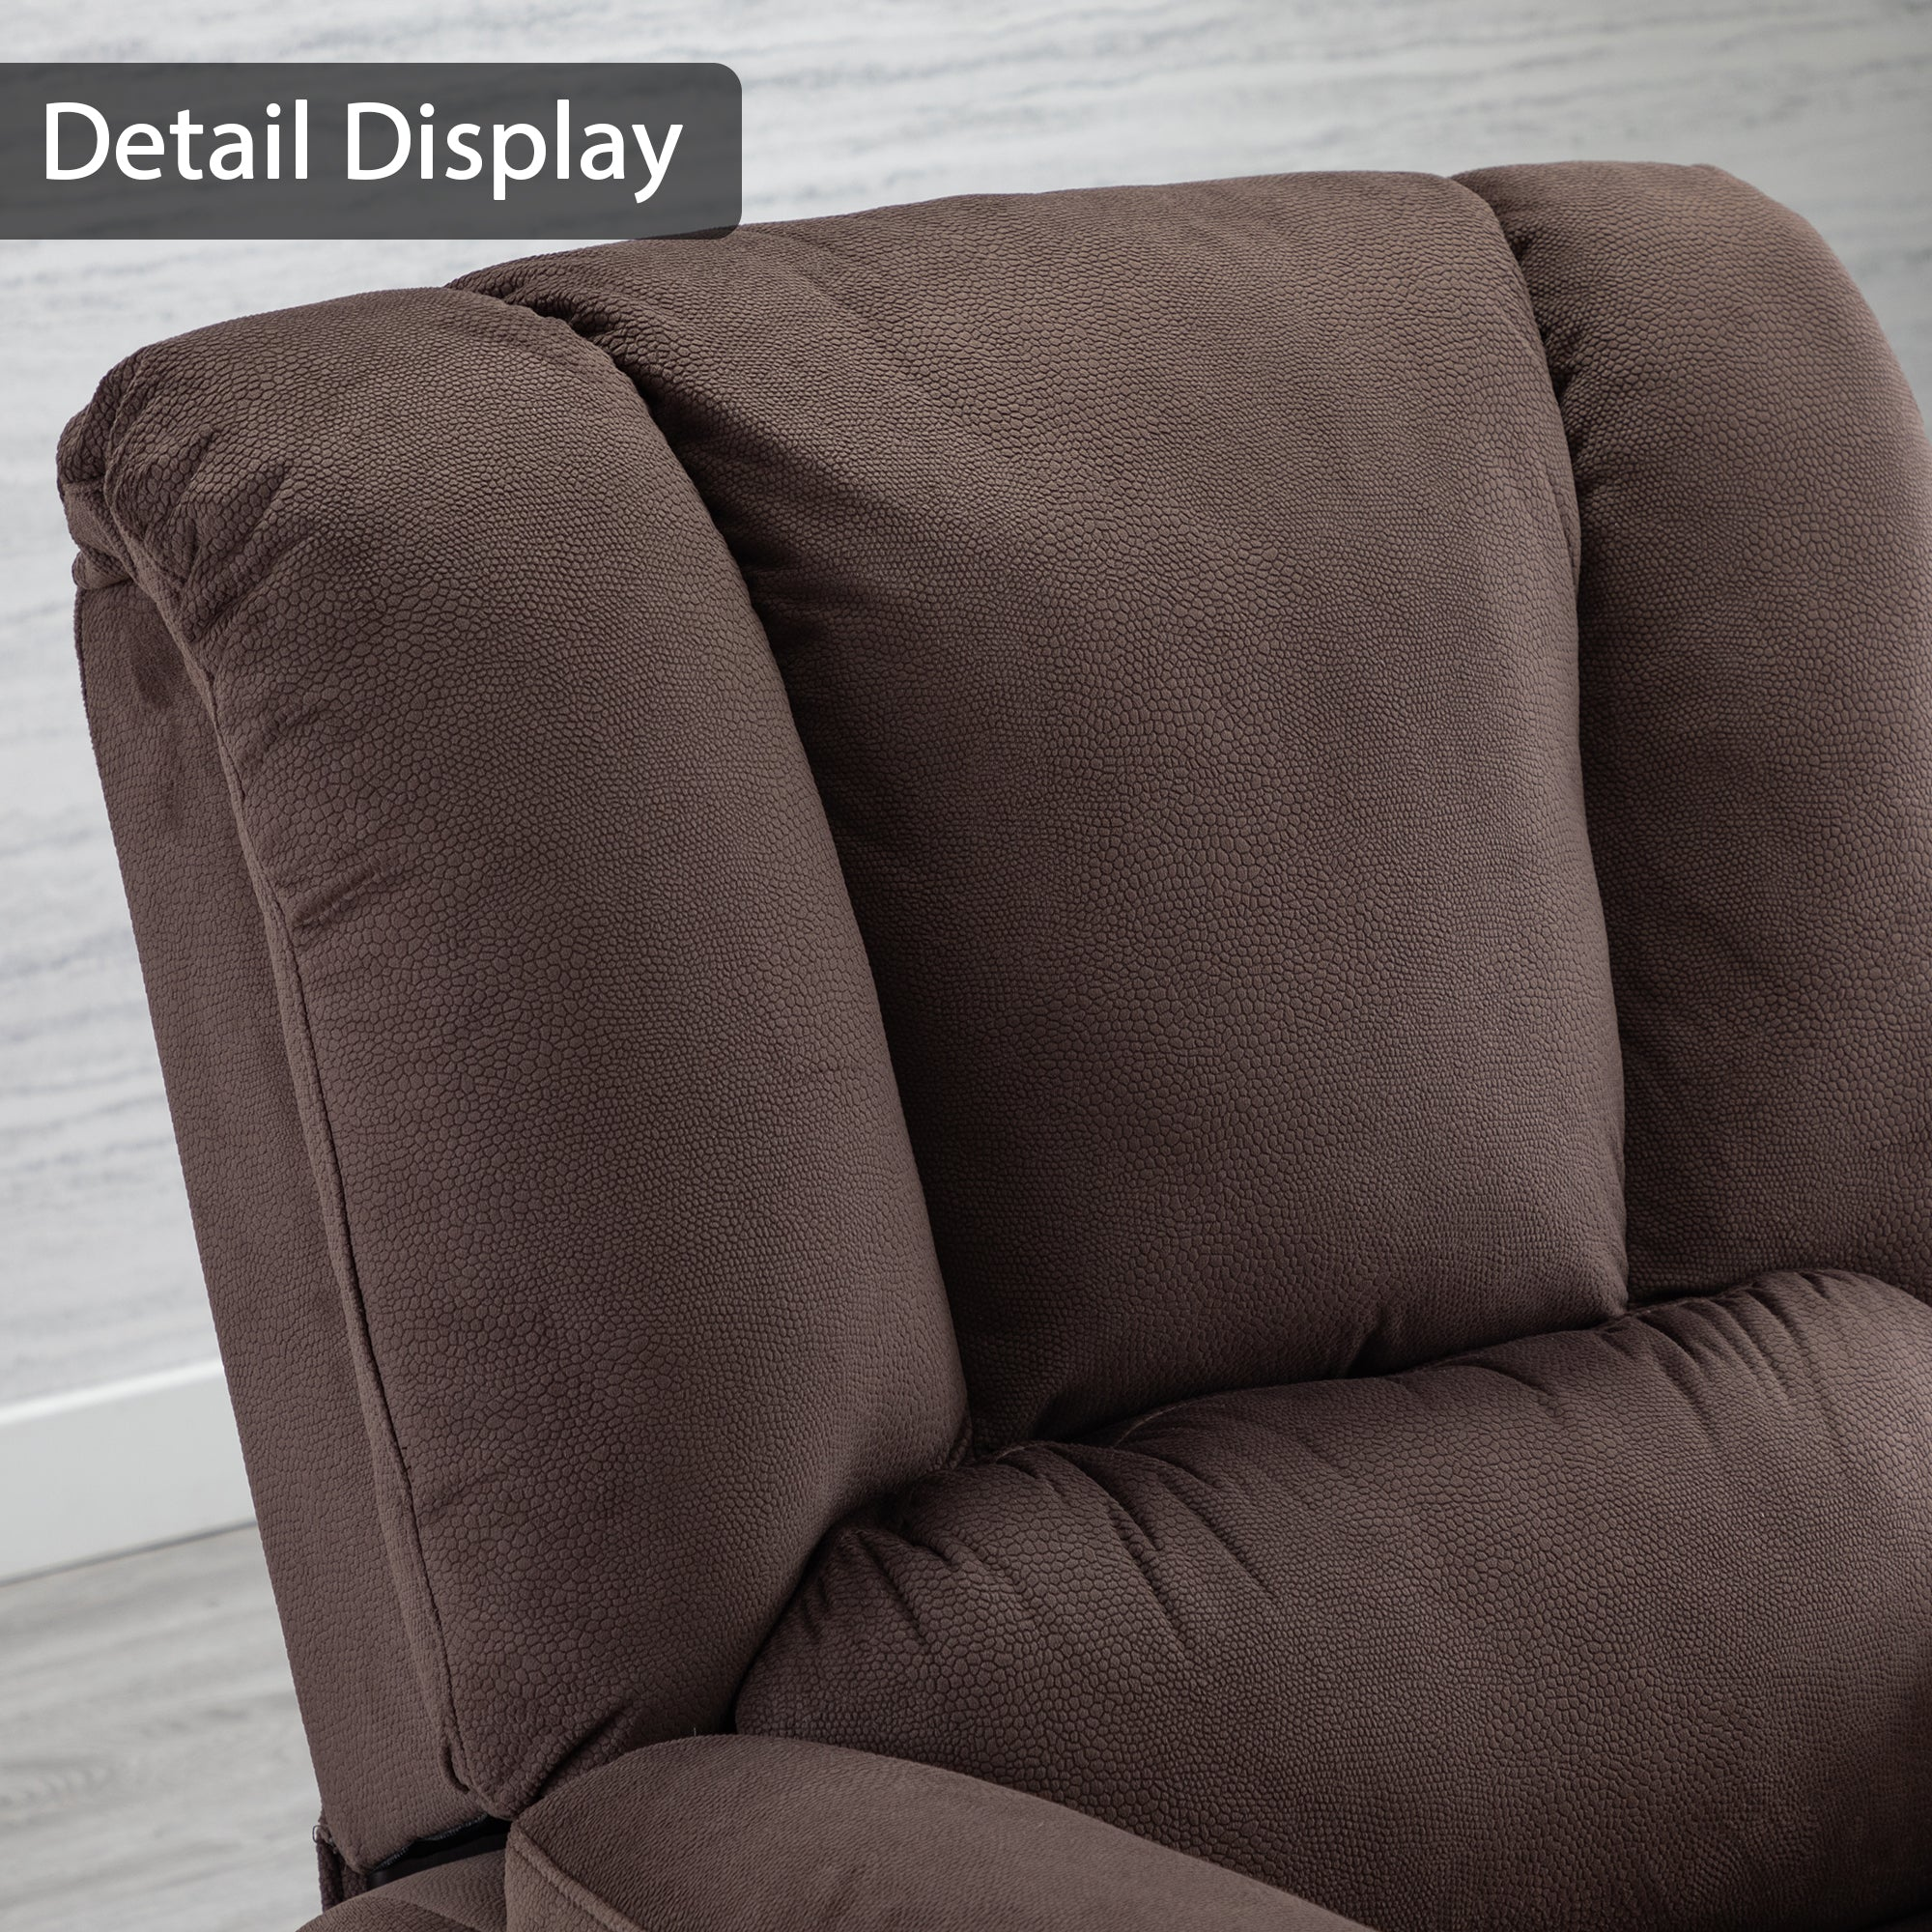 Power Lift Chair Electric Chair Sofa Recliner Chairs with Remote Control